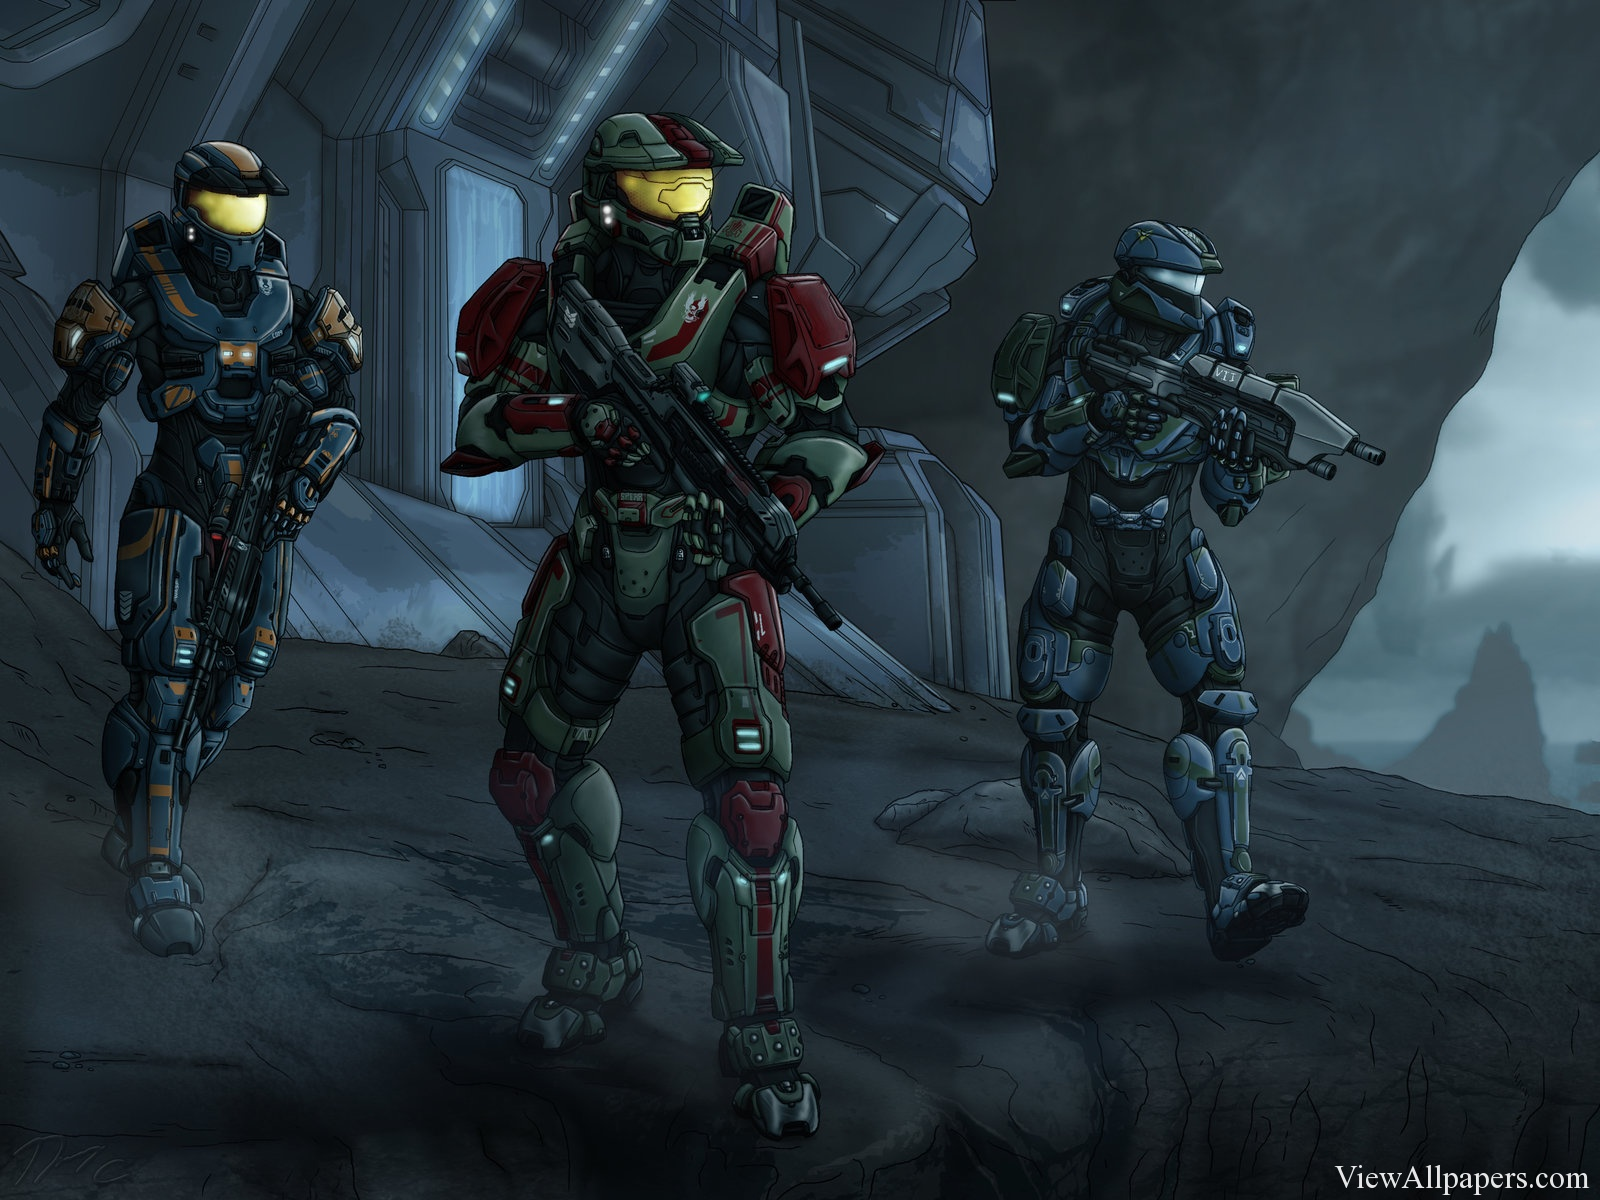 Wallpaper 2015 Halo 5 Guardians Photos For PC computers desktop 1600x1200